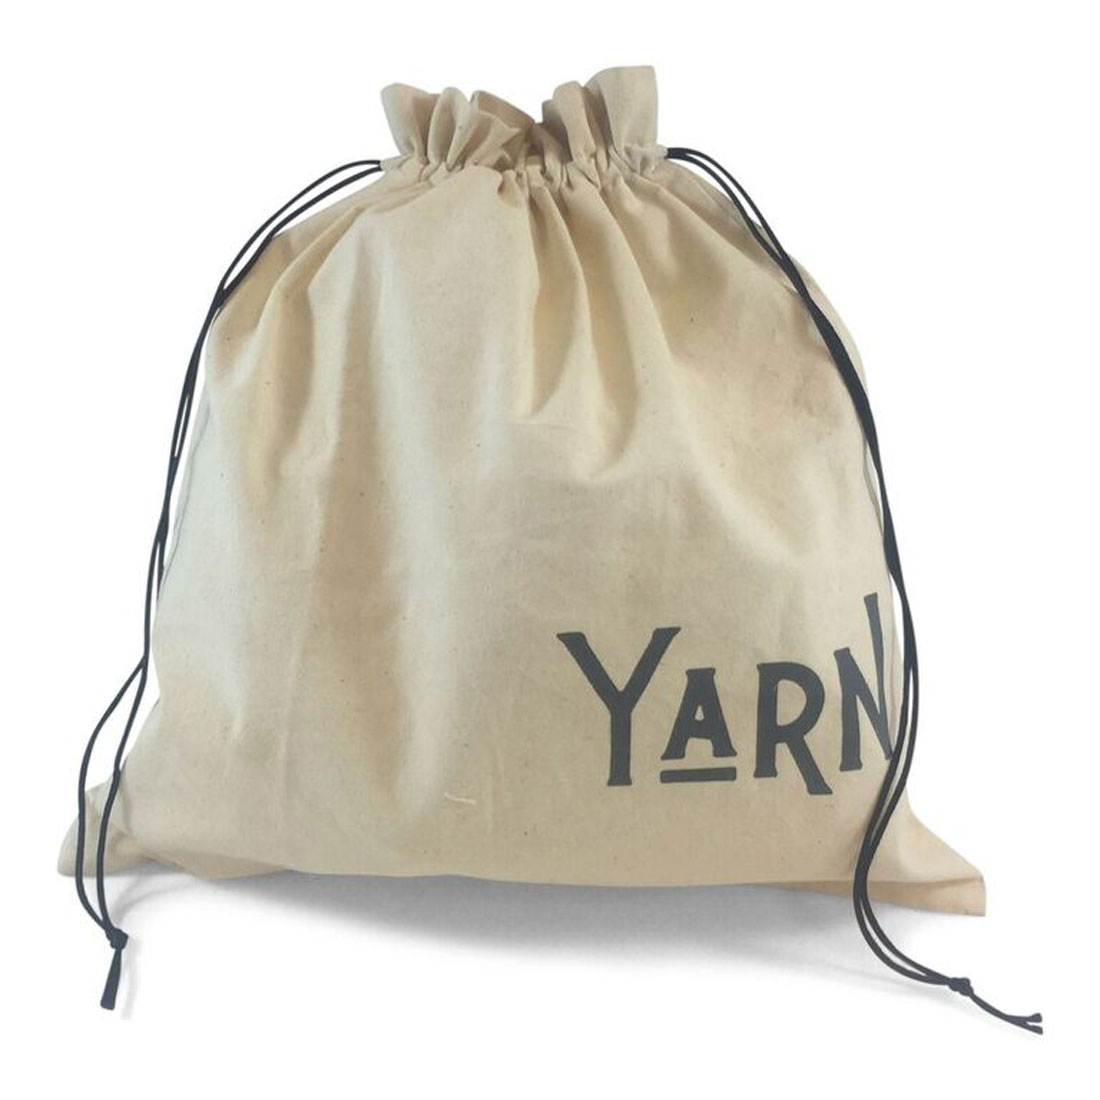 "della Q Edict Yarn Storage and Knitting Large Bag (14.5"" W x 16.5"" H) ""Yarn Goddess"""